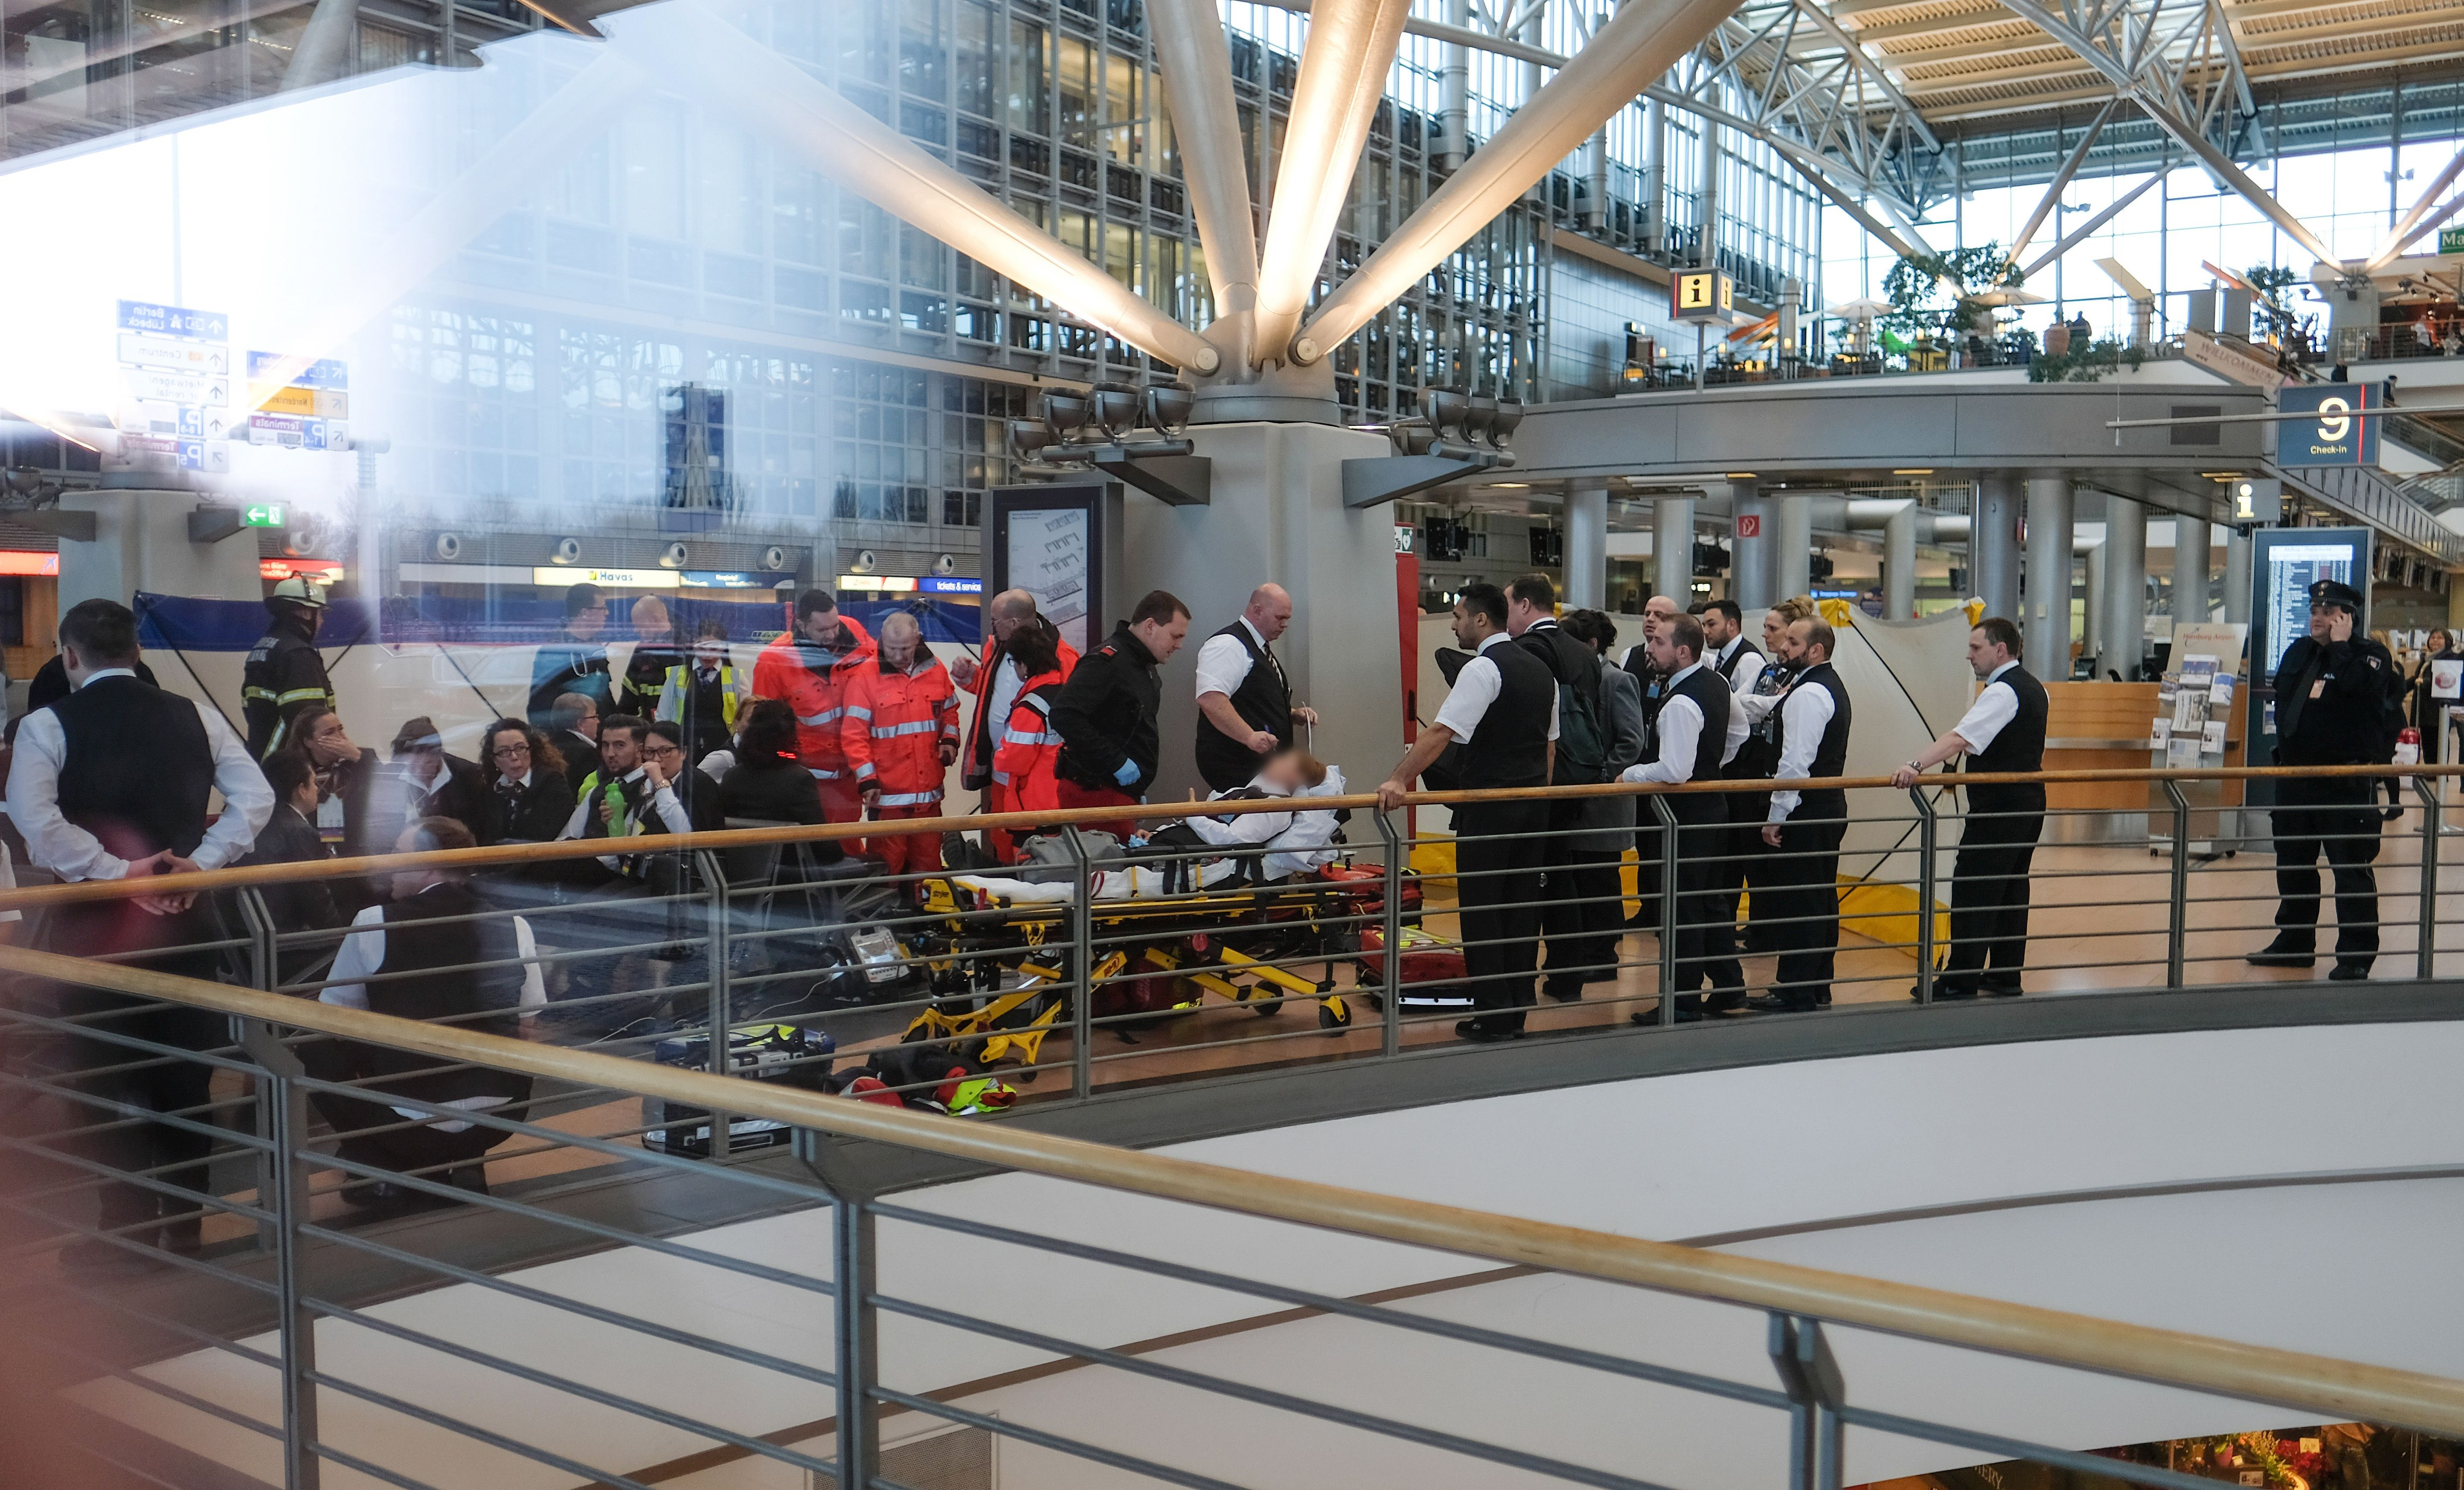 GERMANY-AIRPORT-INCIDENT